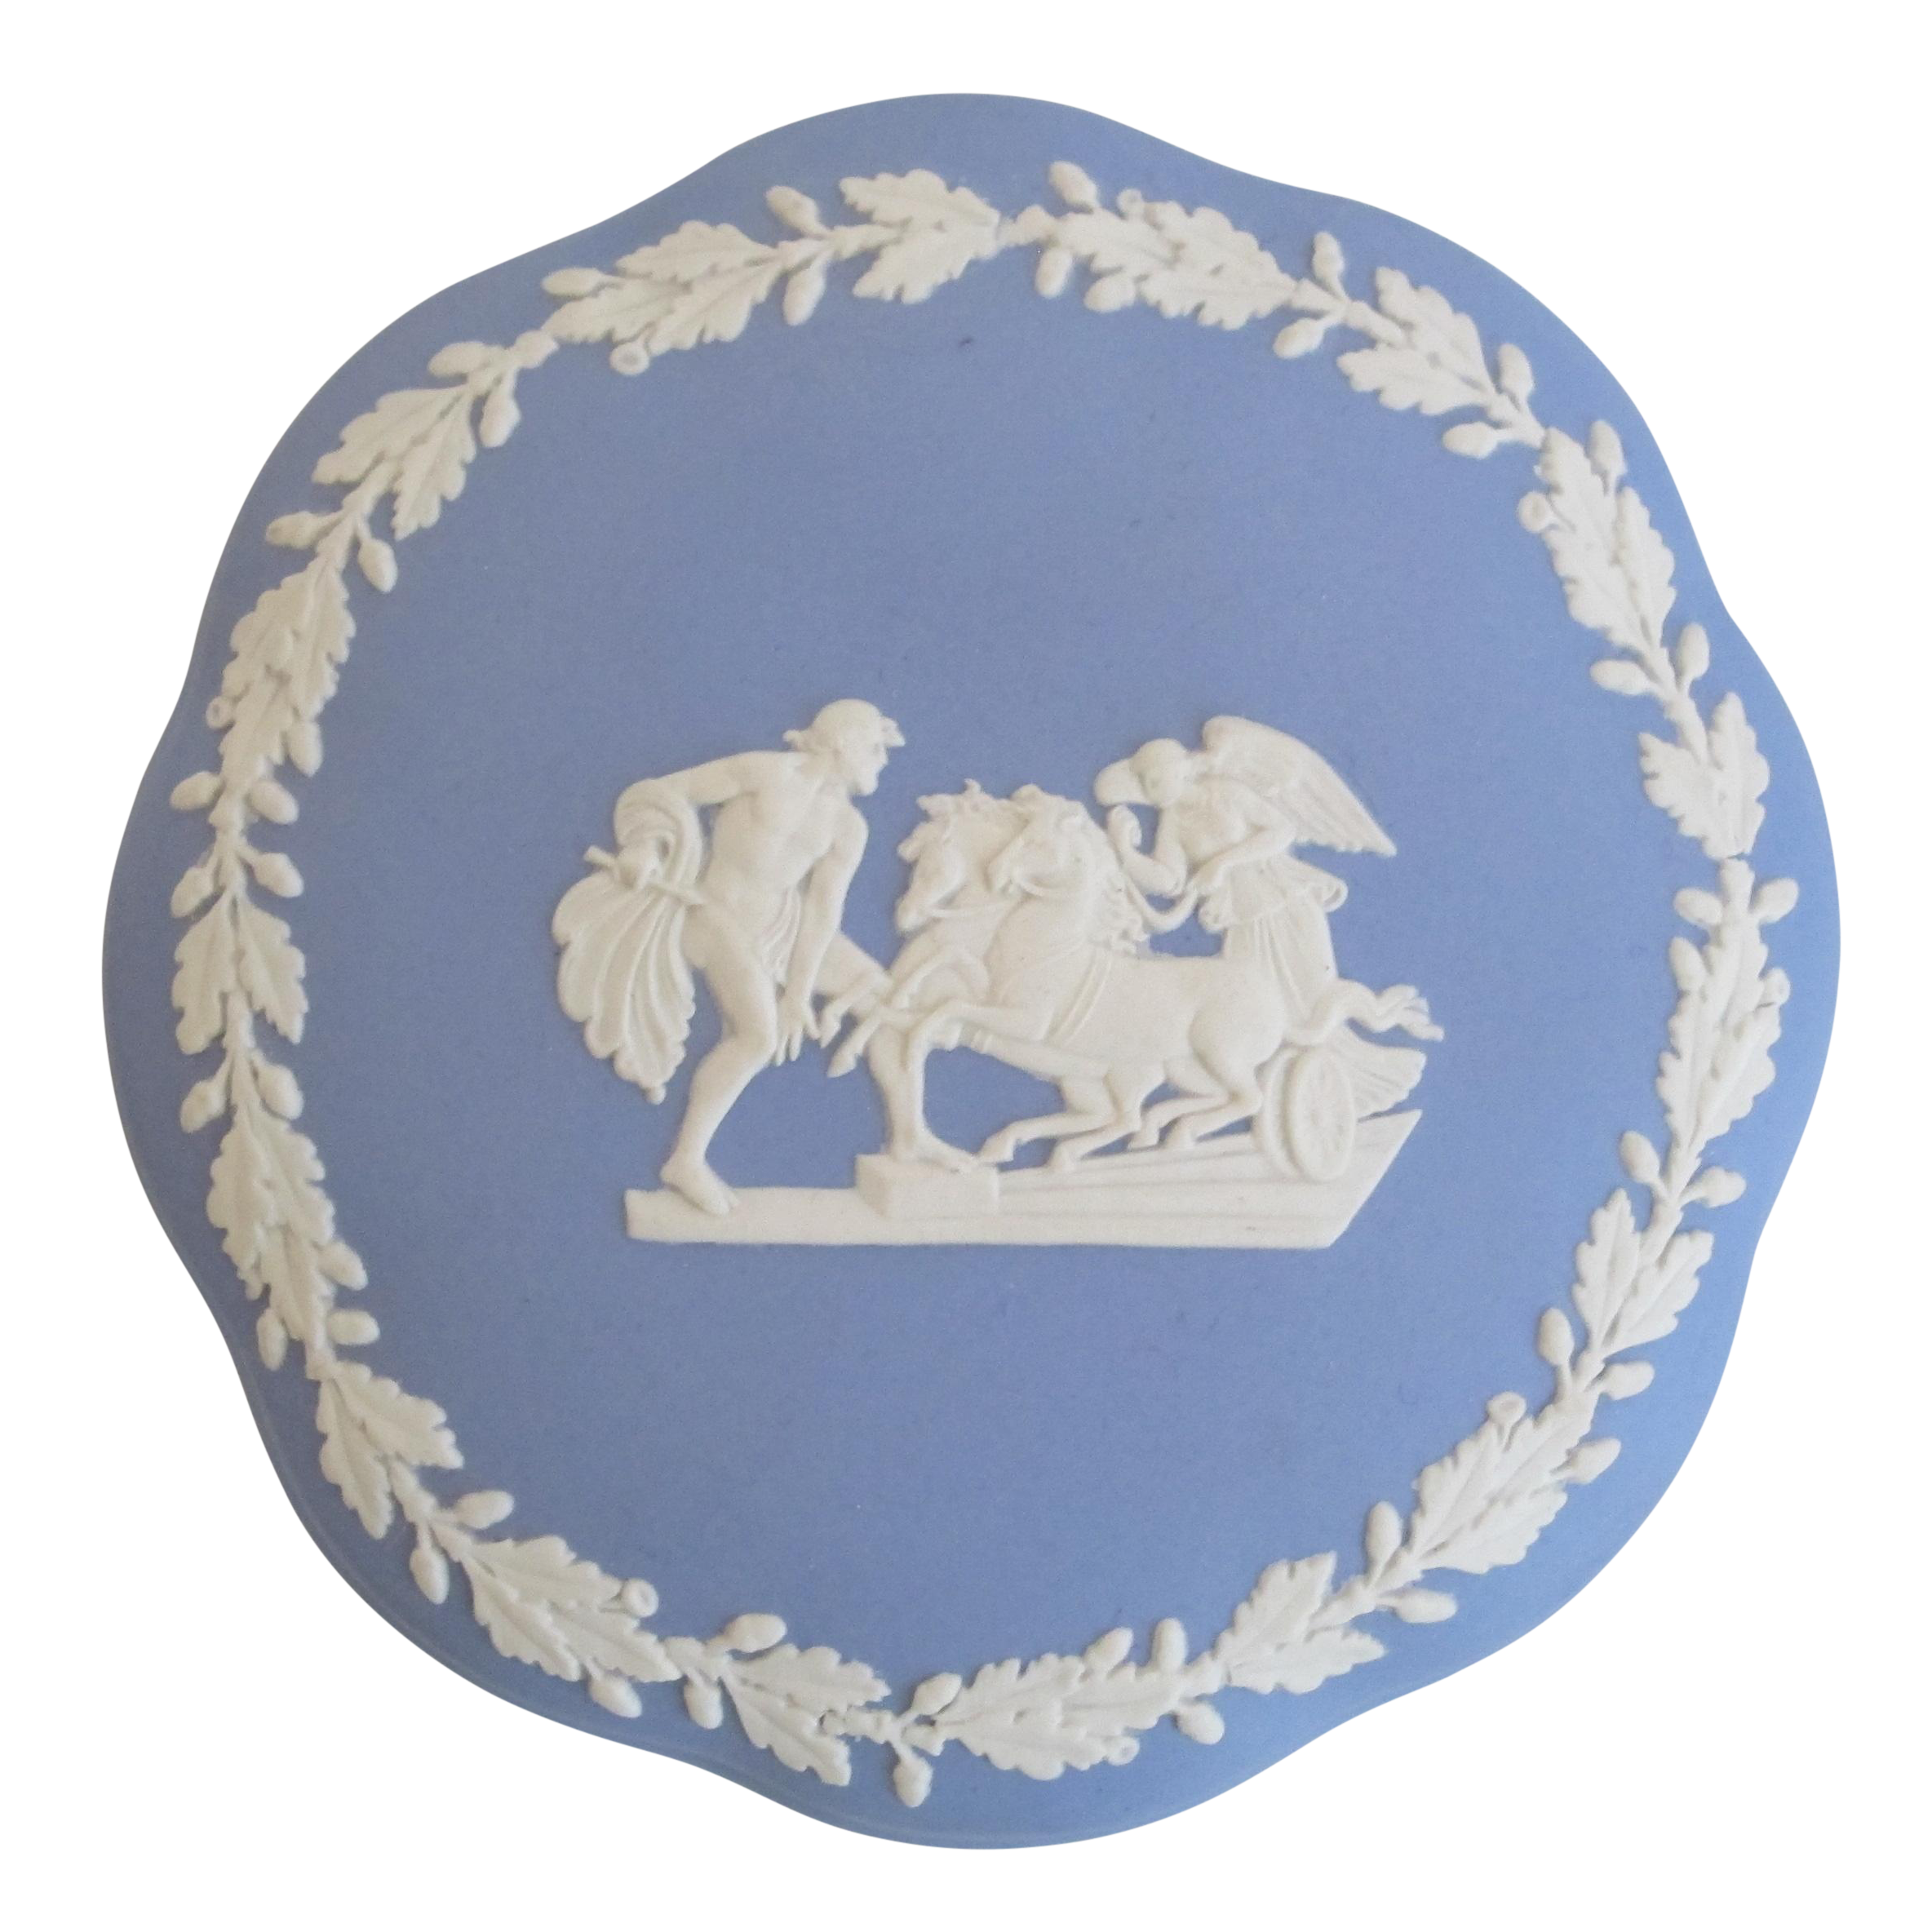 Wedgewood trinket box chairish Wedgewood designs